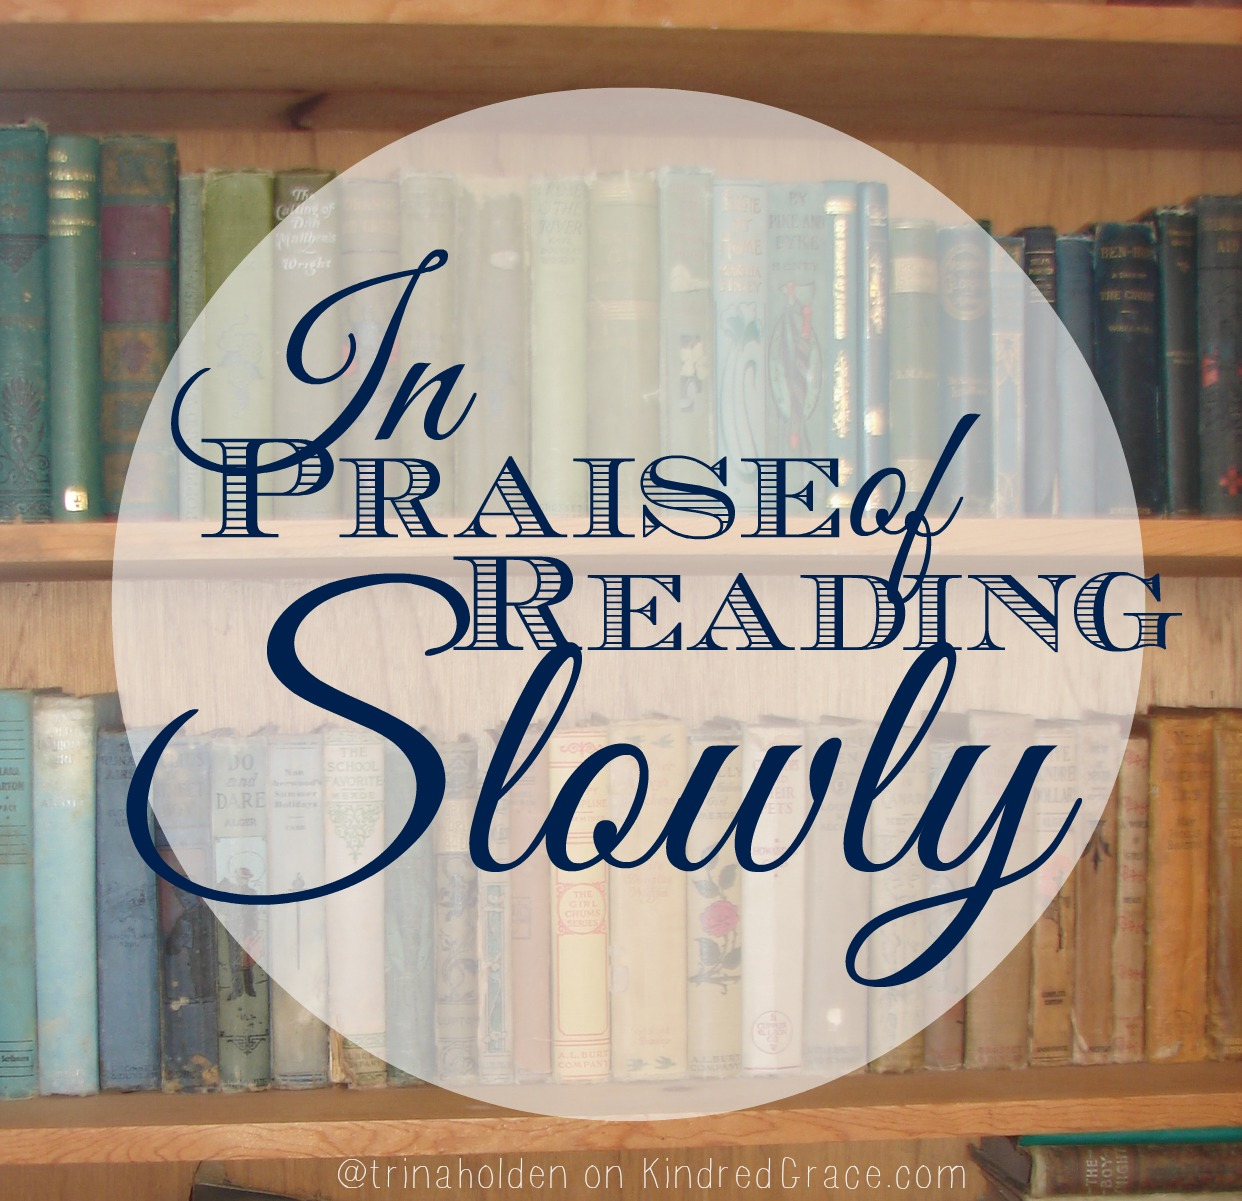 In Praise of Reading Slowly